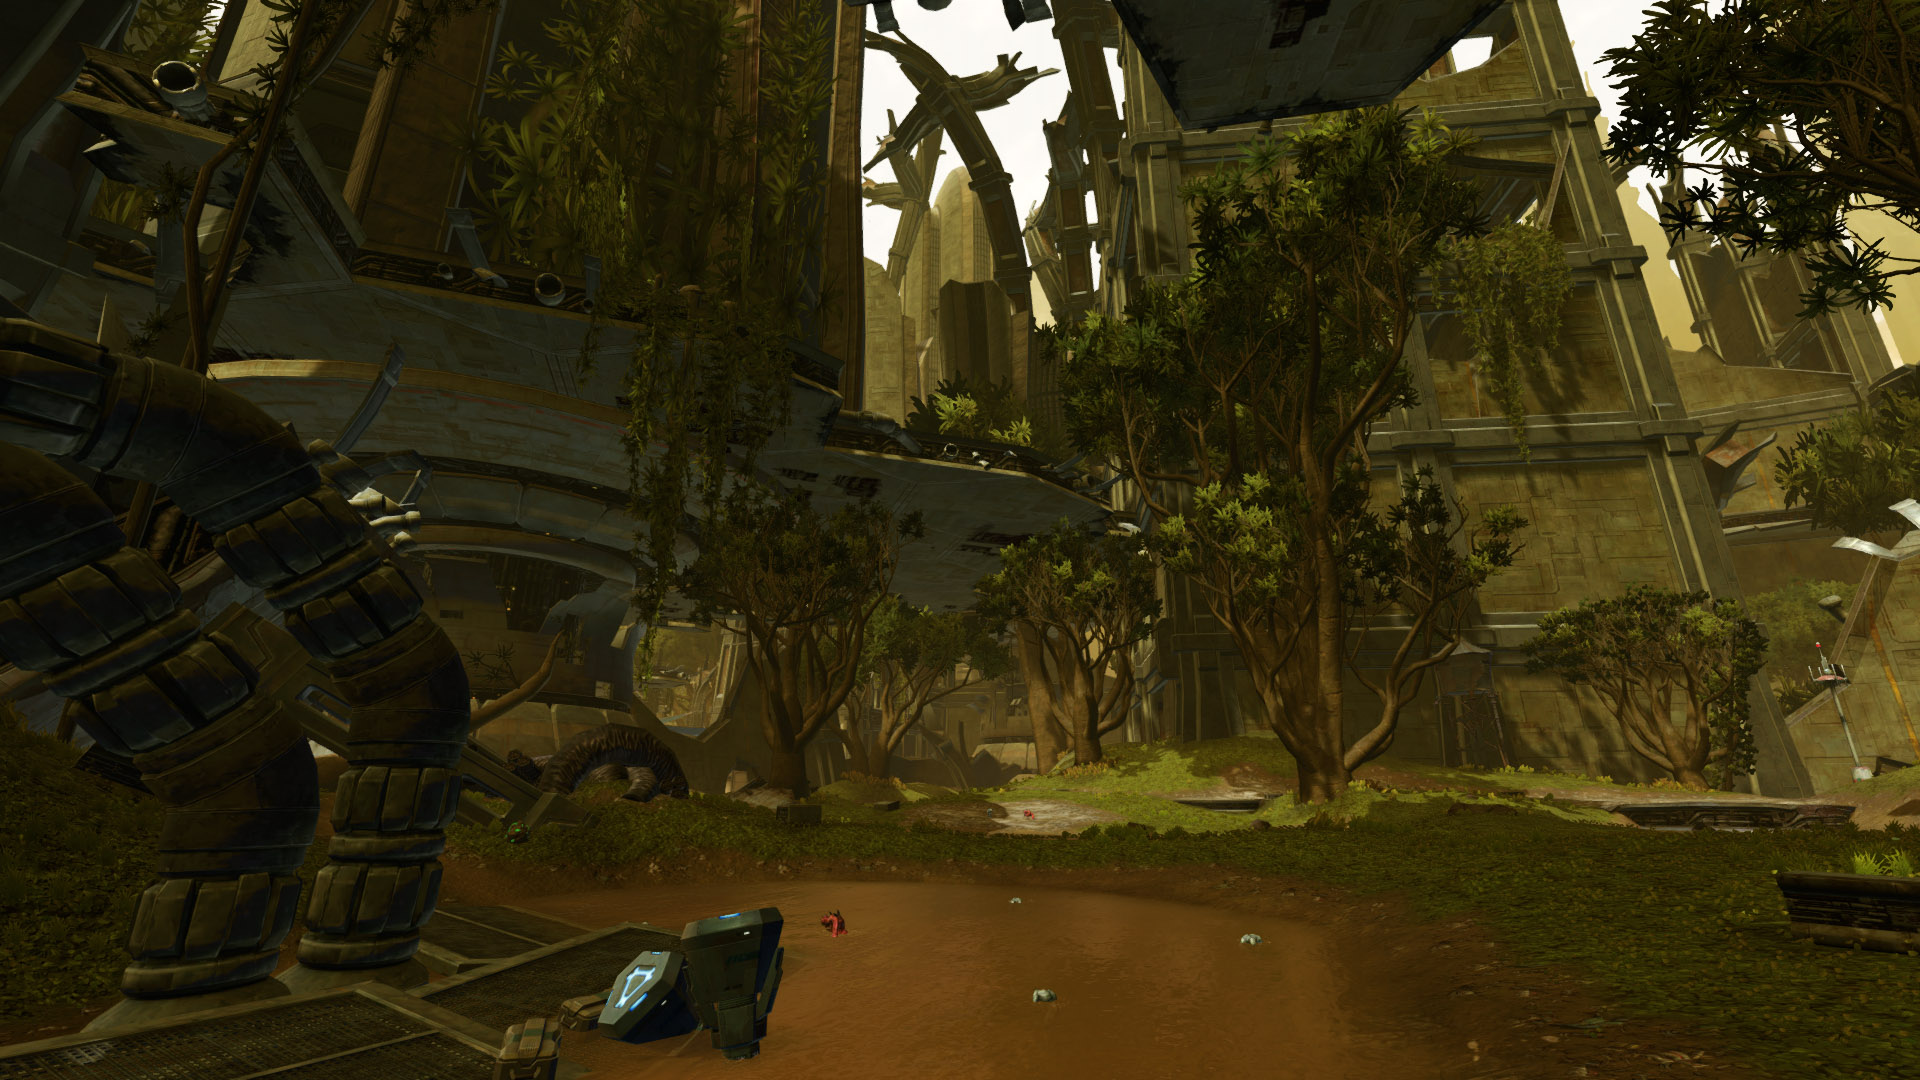 SWTOR screenshot of the landscape of Taris, showing ruins of large buildings overgrown with trees and wild rakghouls